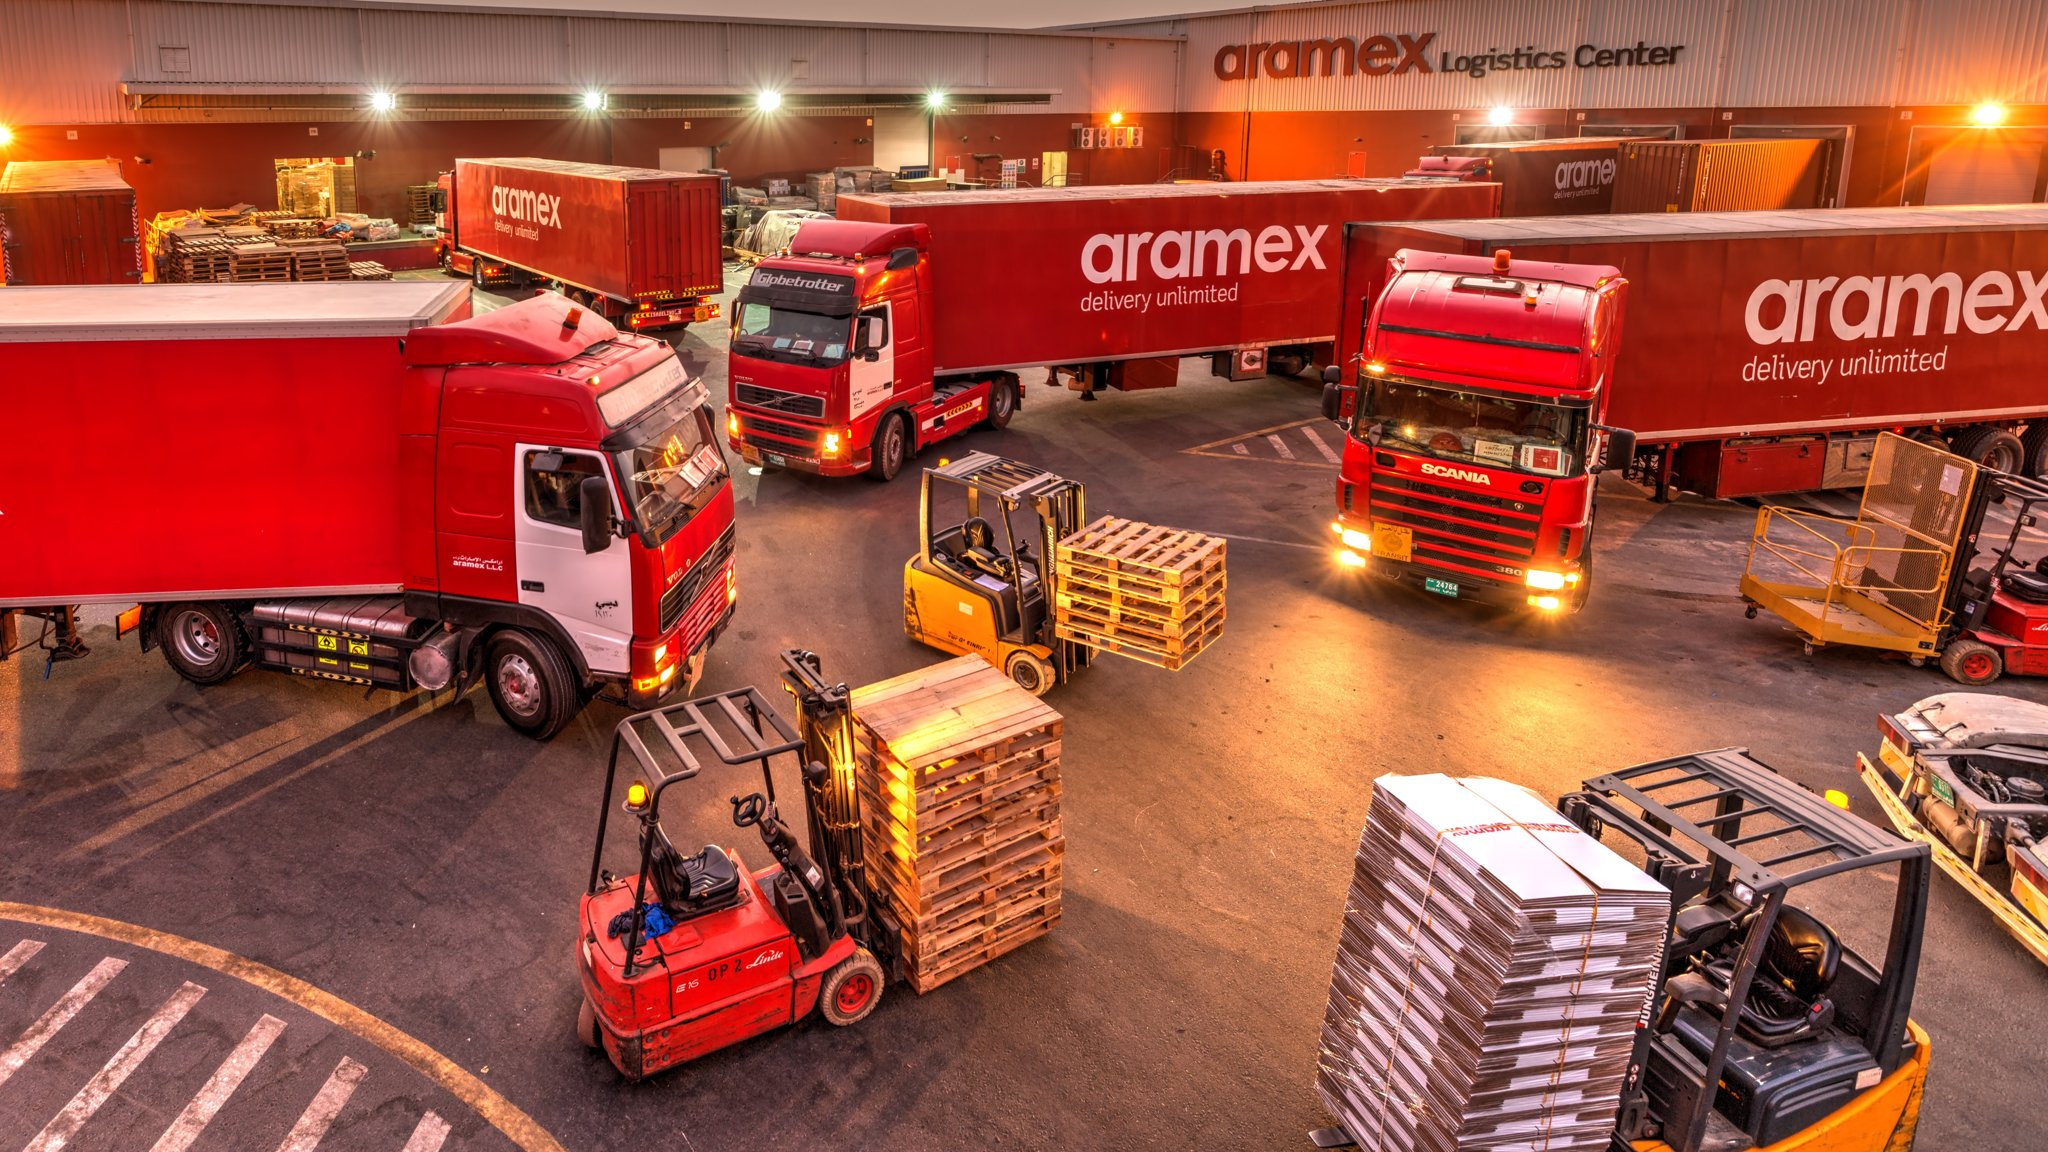 Aramex Aims To Disrupt The Logistics Industry